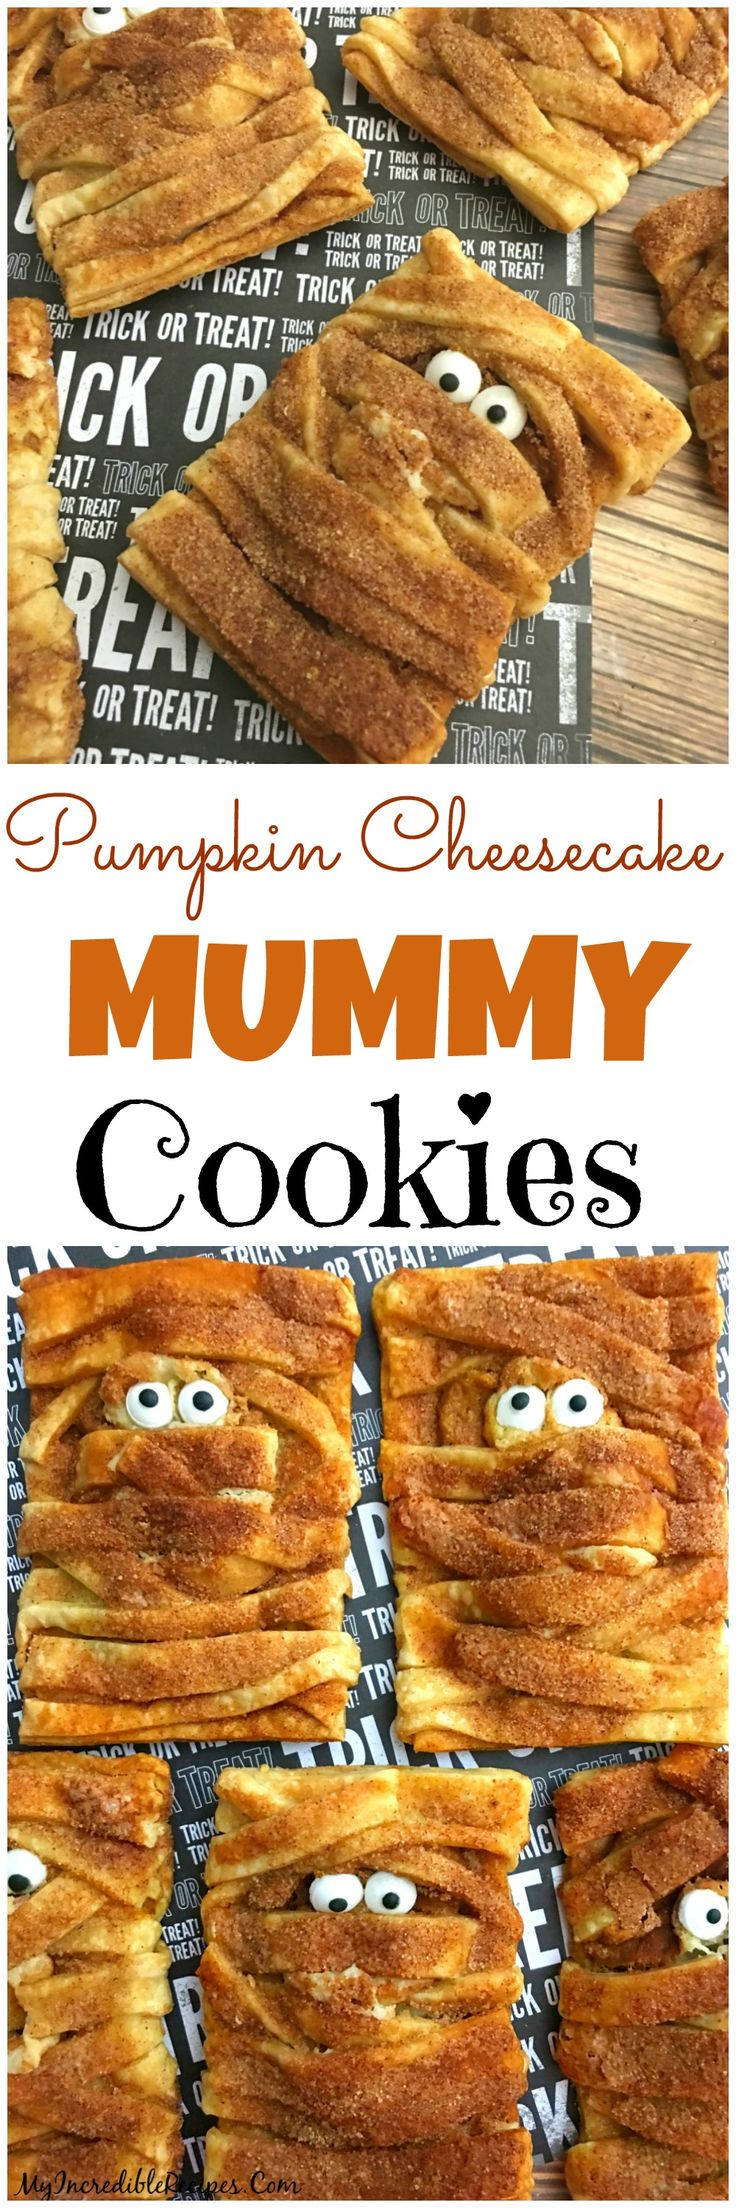 Pumpkin Cheesecake Snickerdoodle MUMMY Cookies!